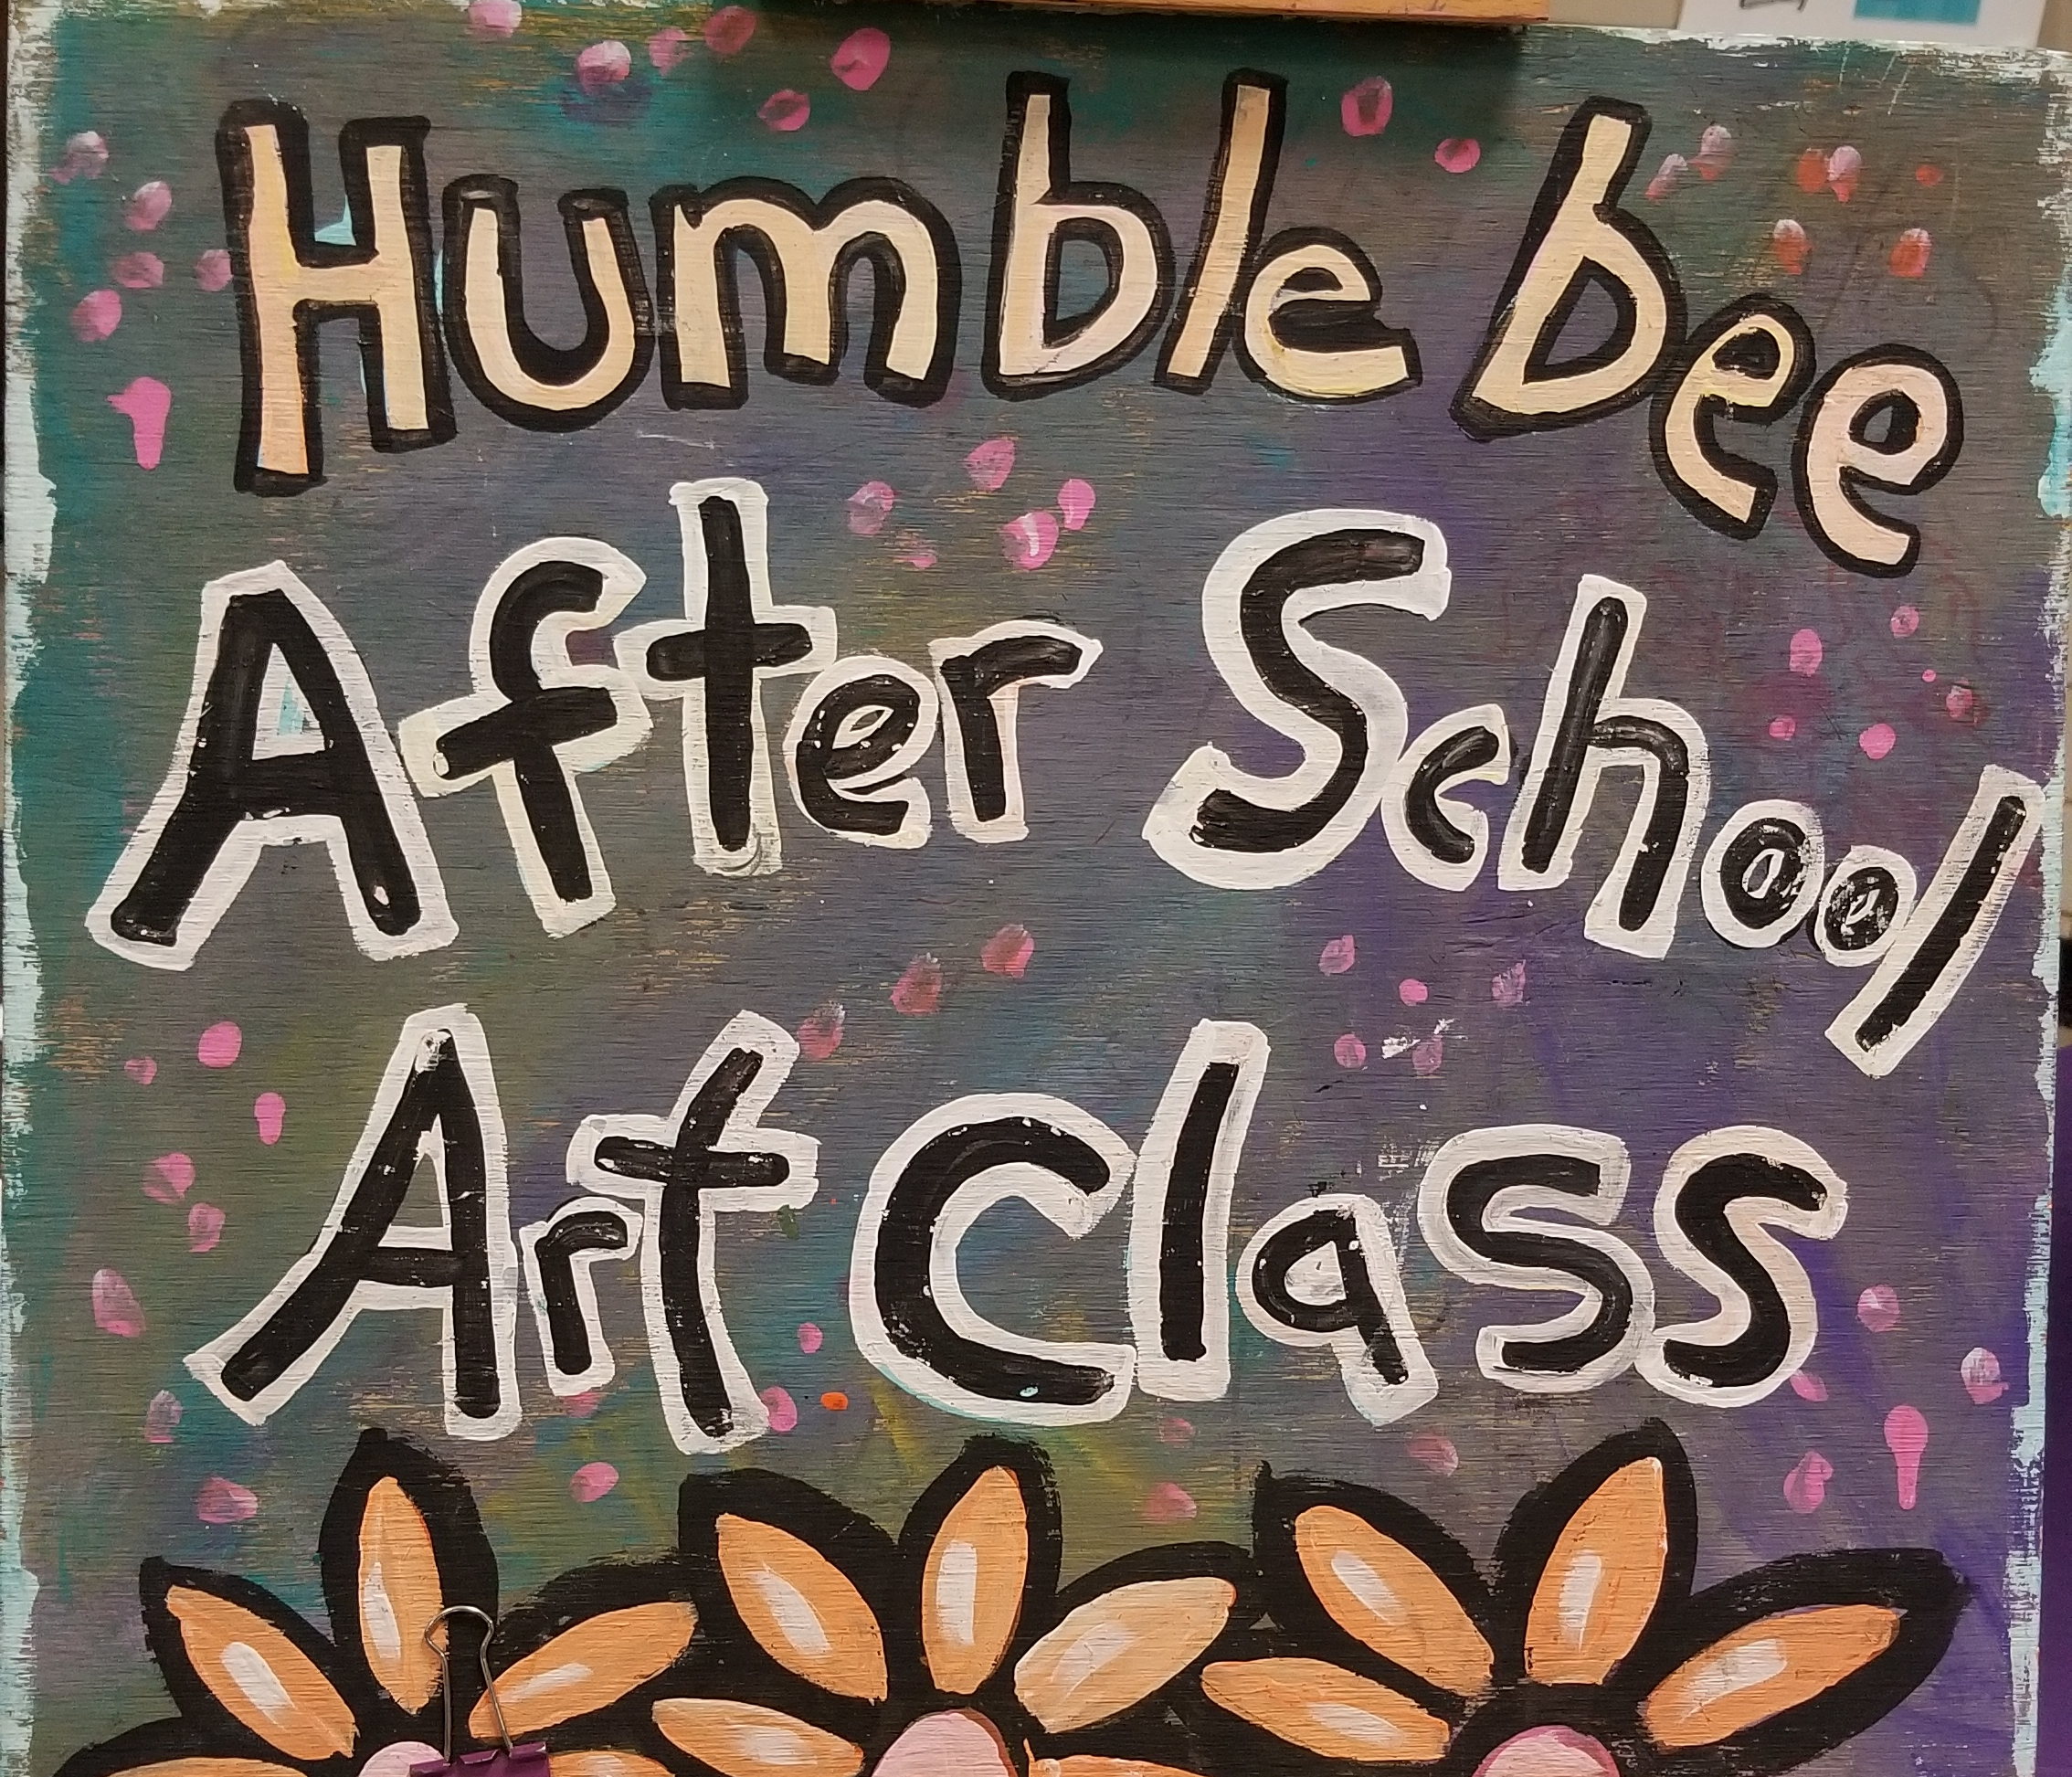 Humblebee After School Art Class